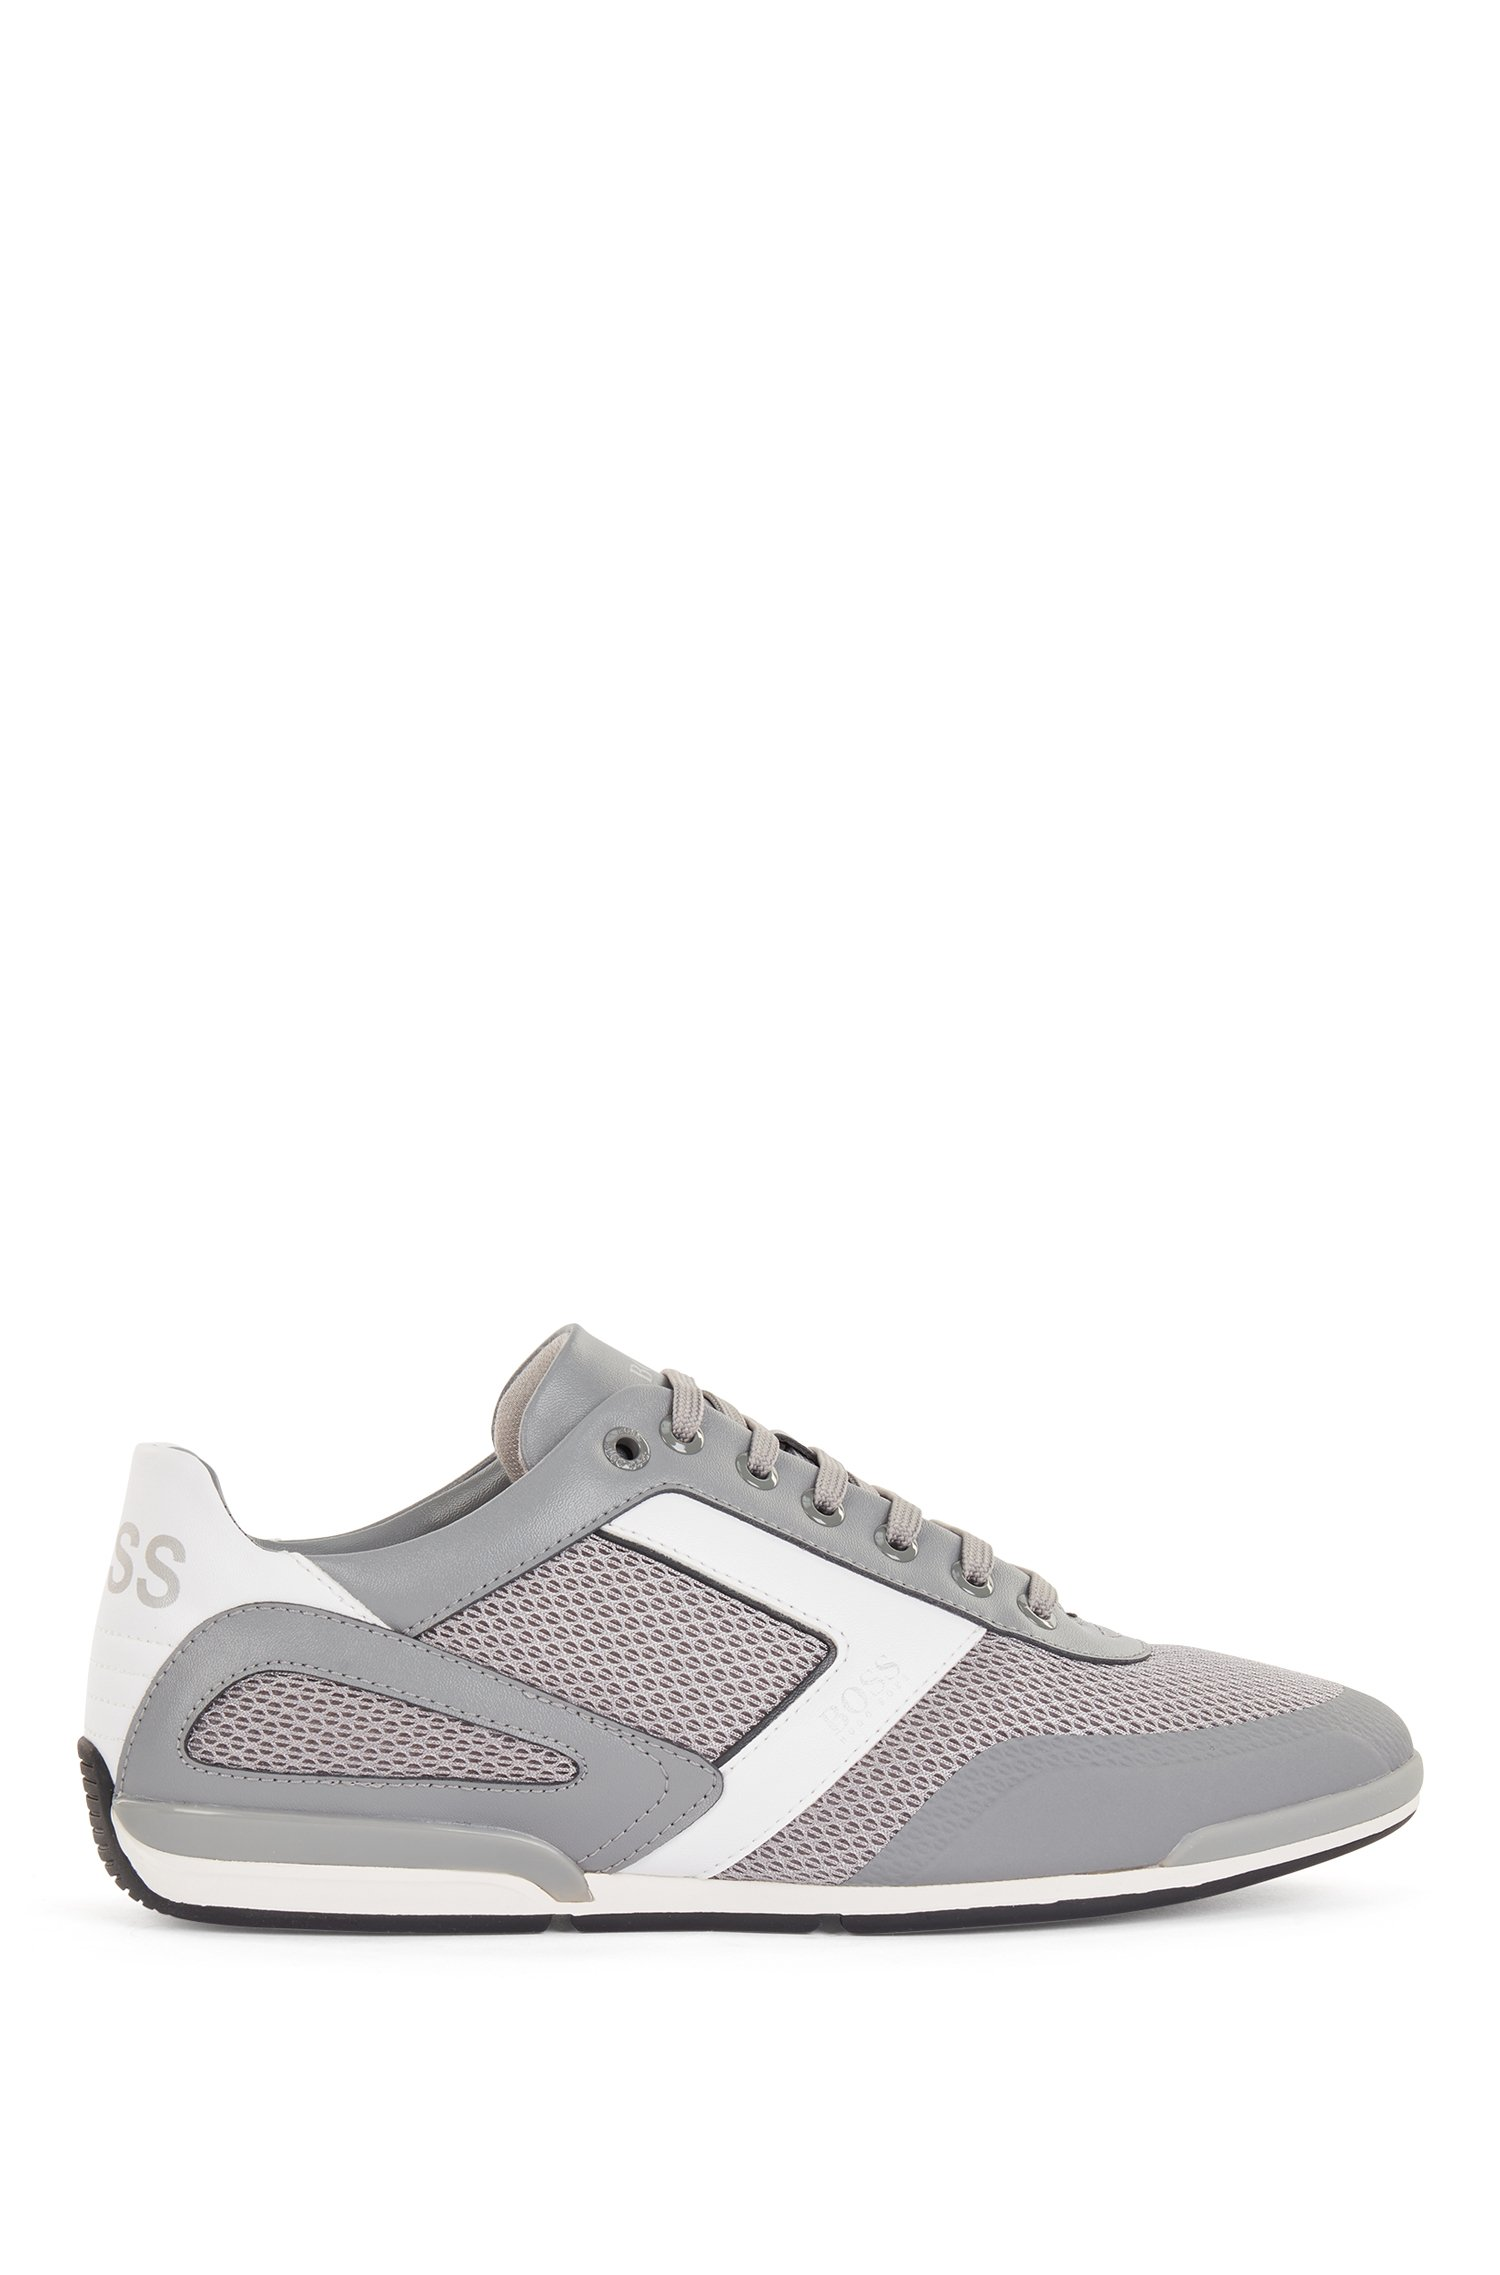 Hybrid trainers with reflective details and backtab logo, Grey